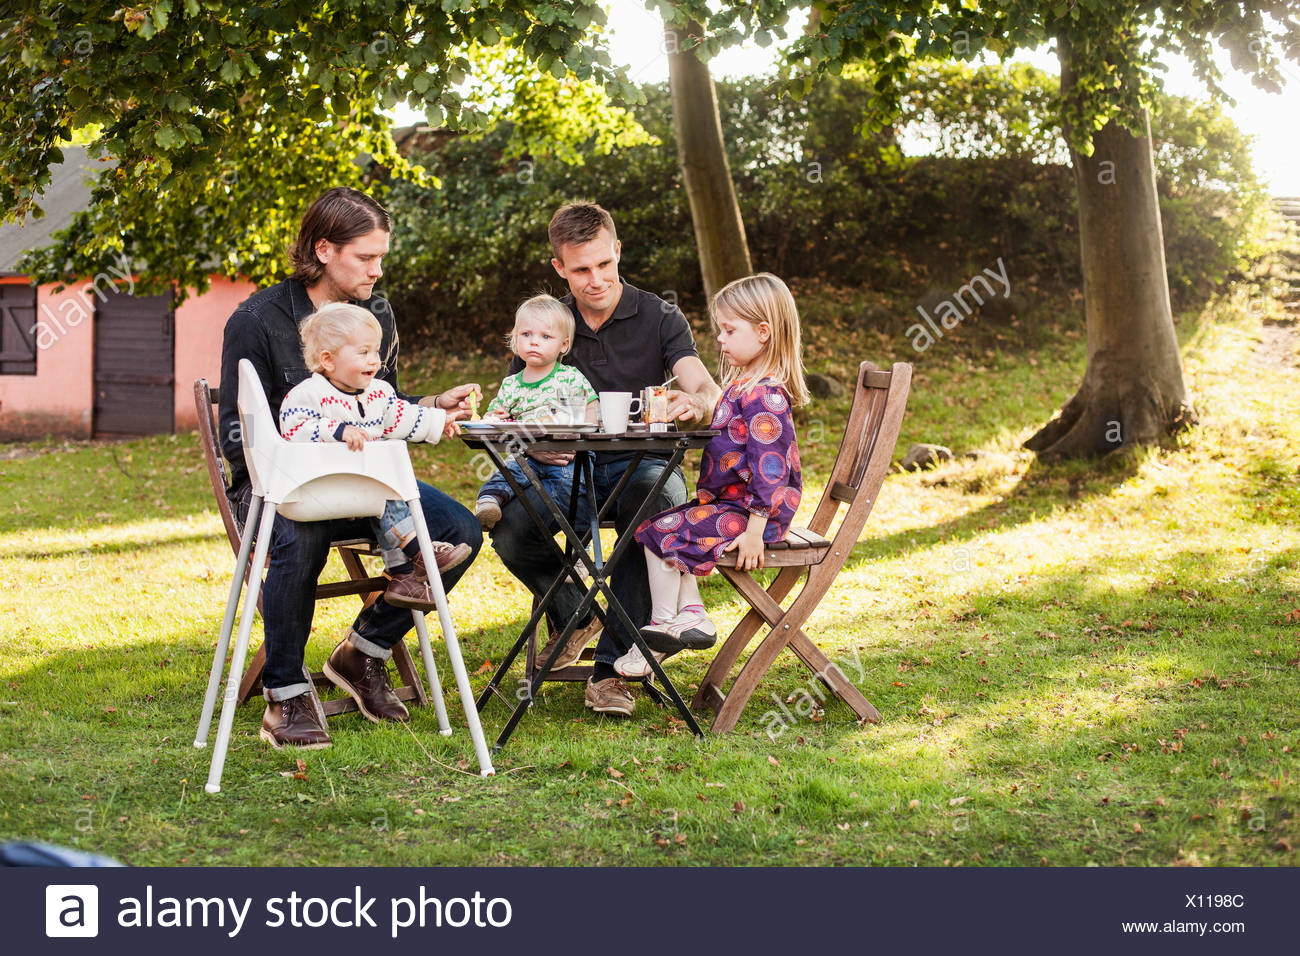 Full length of fathers feeding children in park - Stock Image